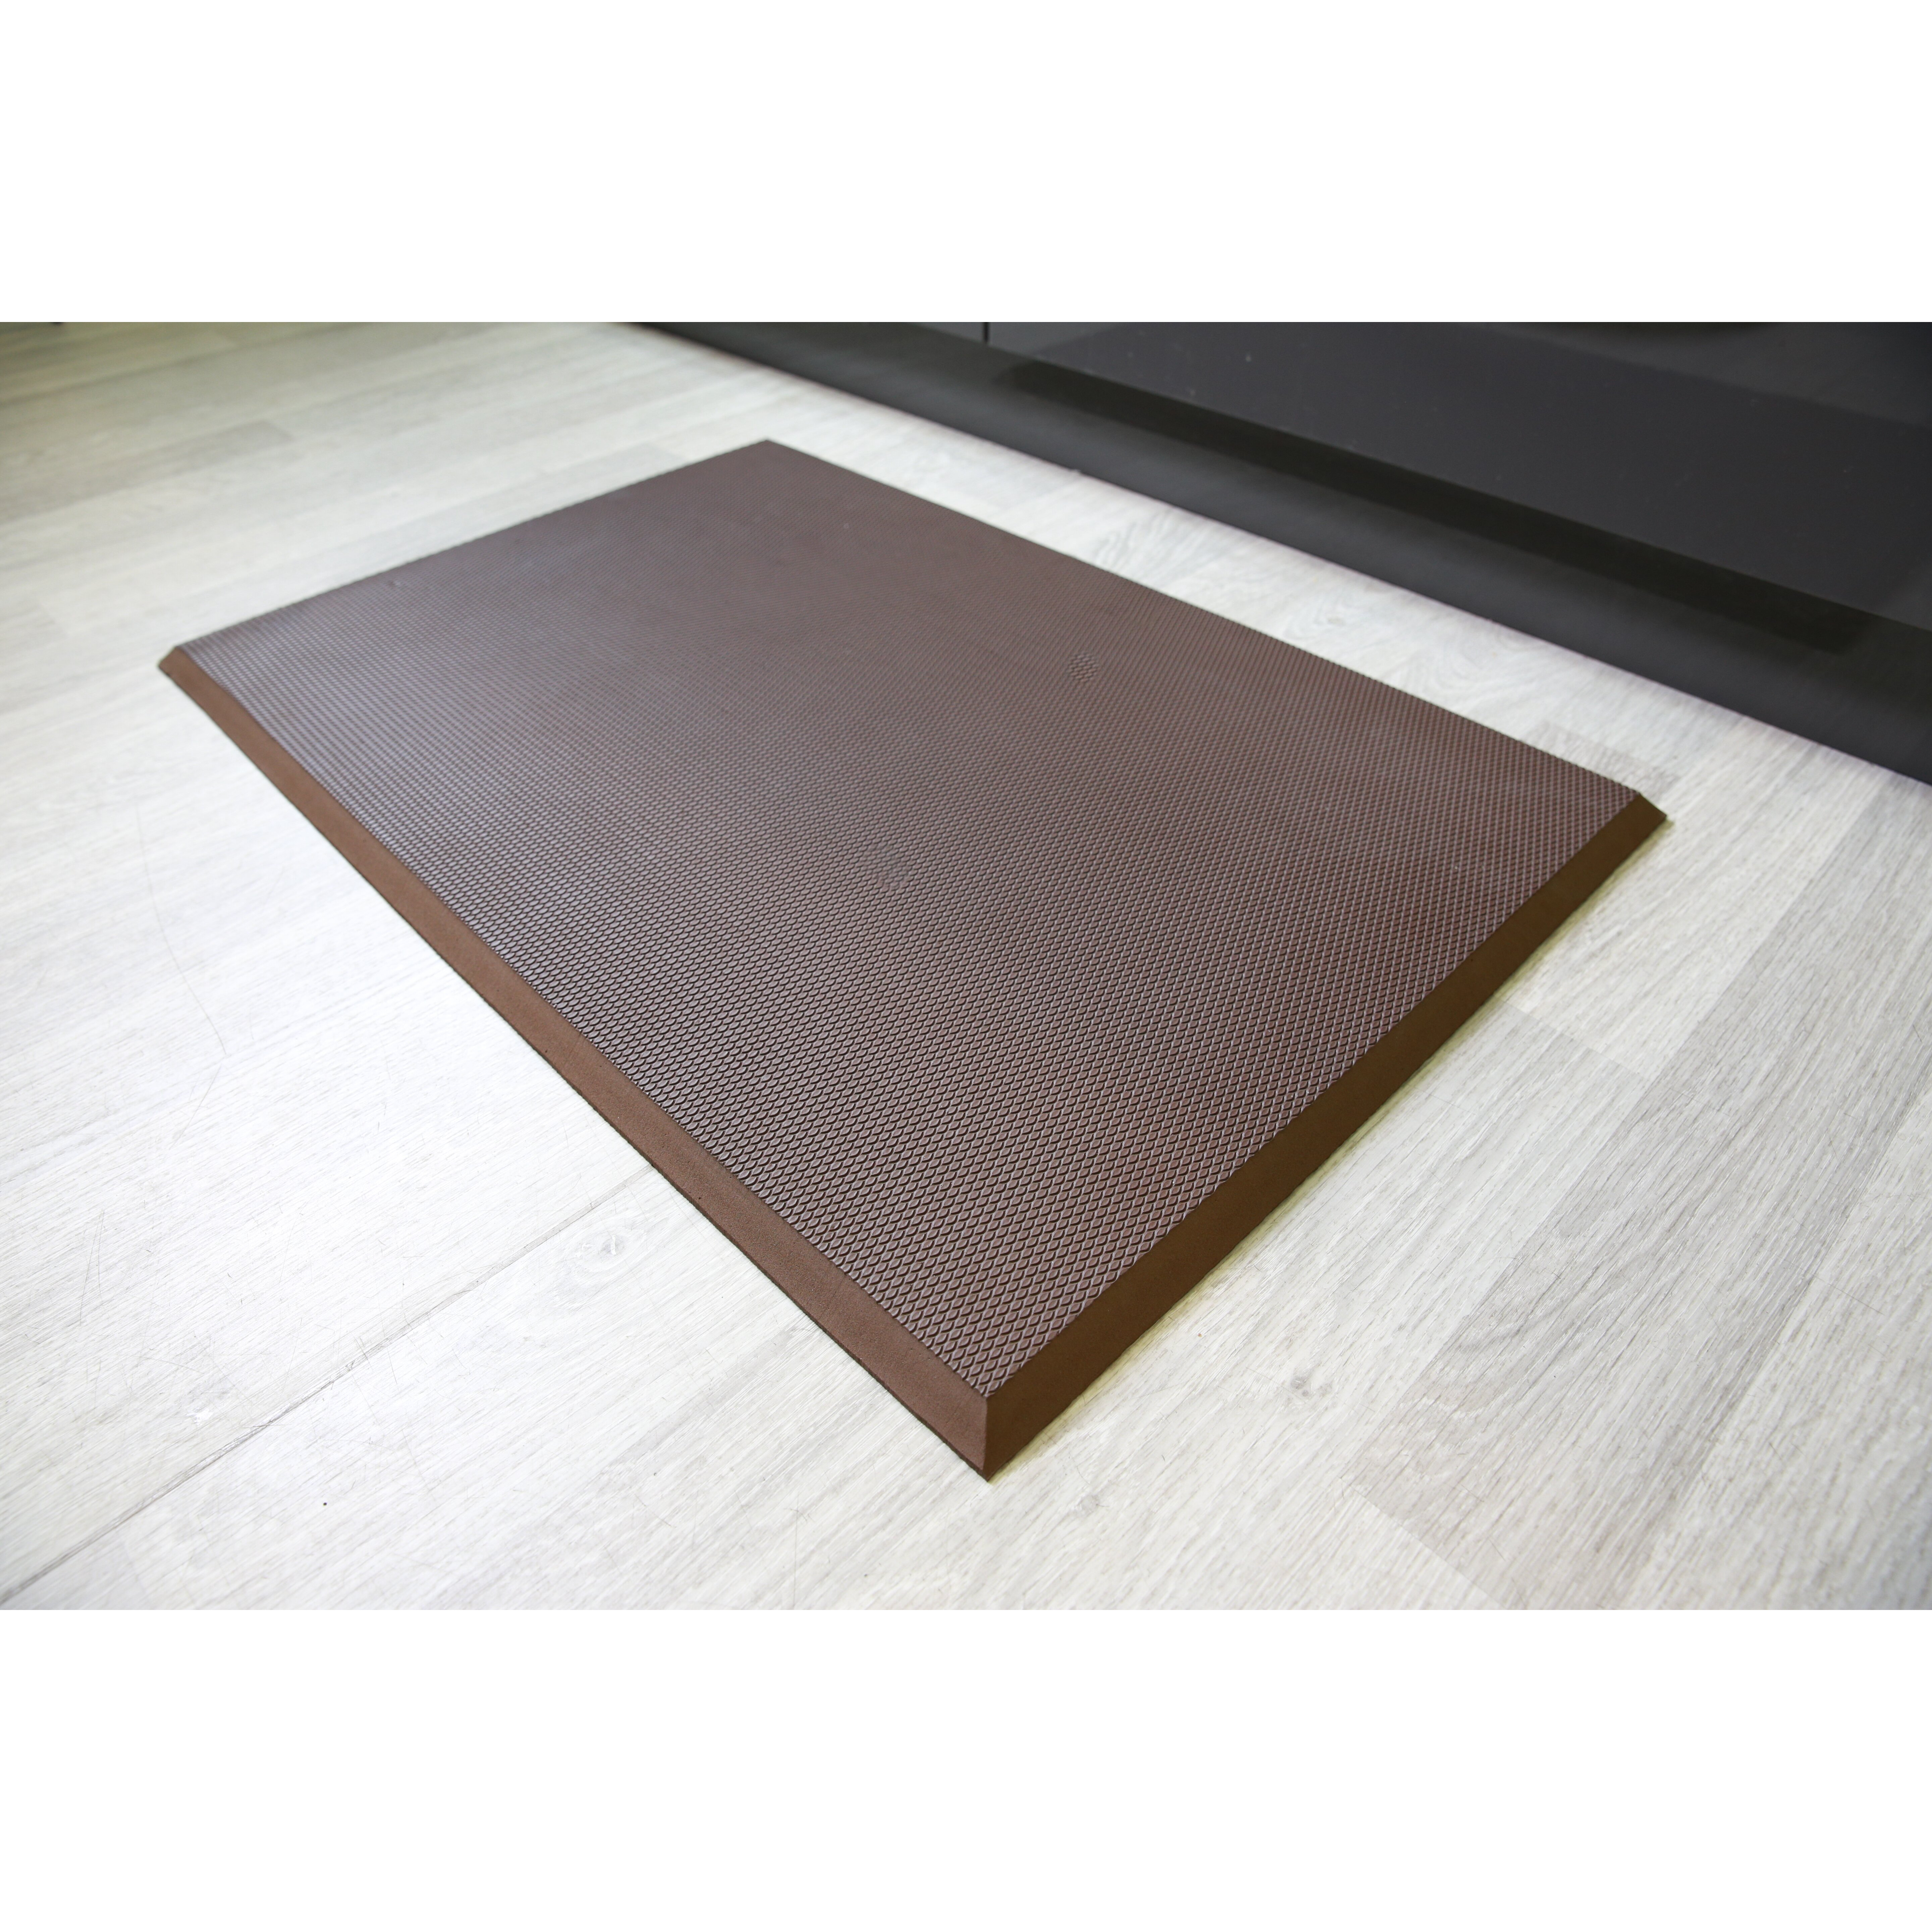 Mats Inc Professional Series Ultimate Comfort Safety